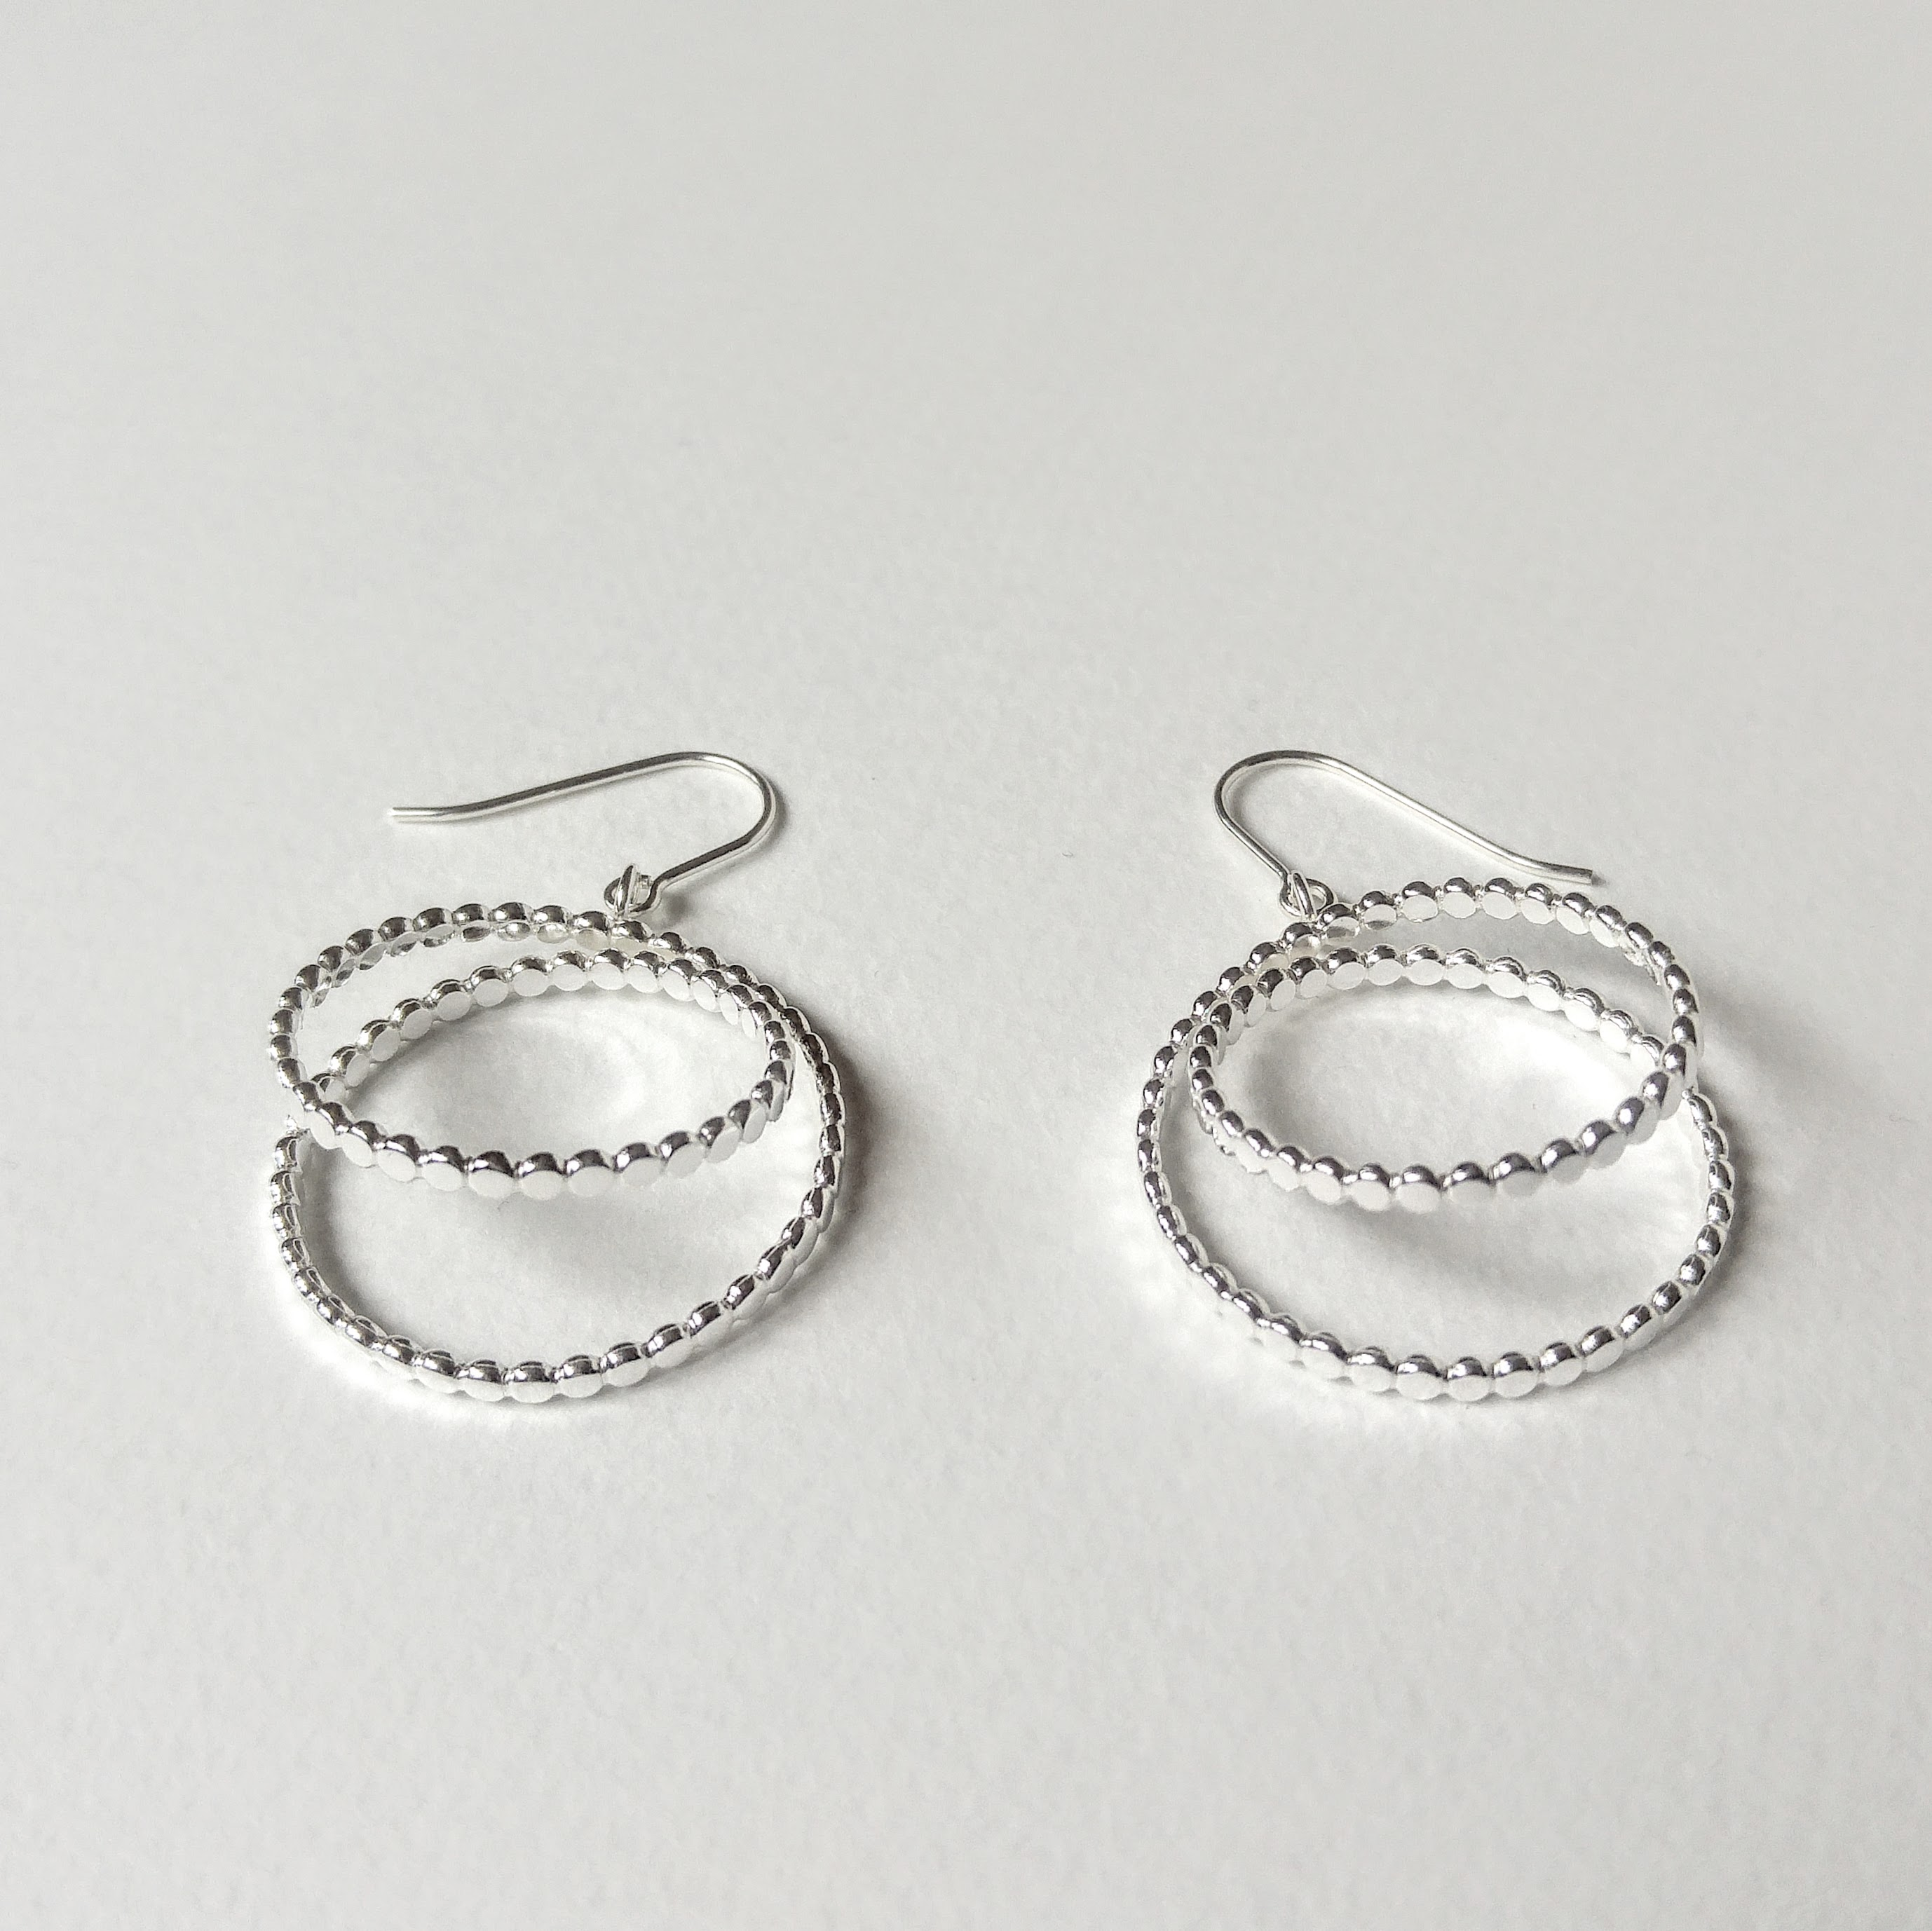 Nuance double hooped earrings